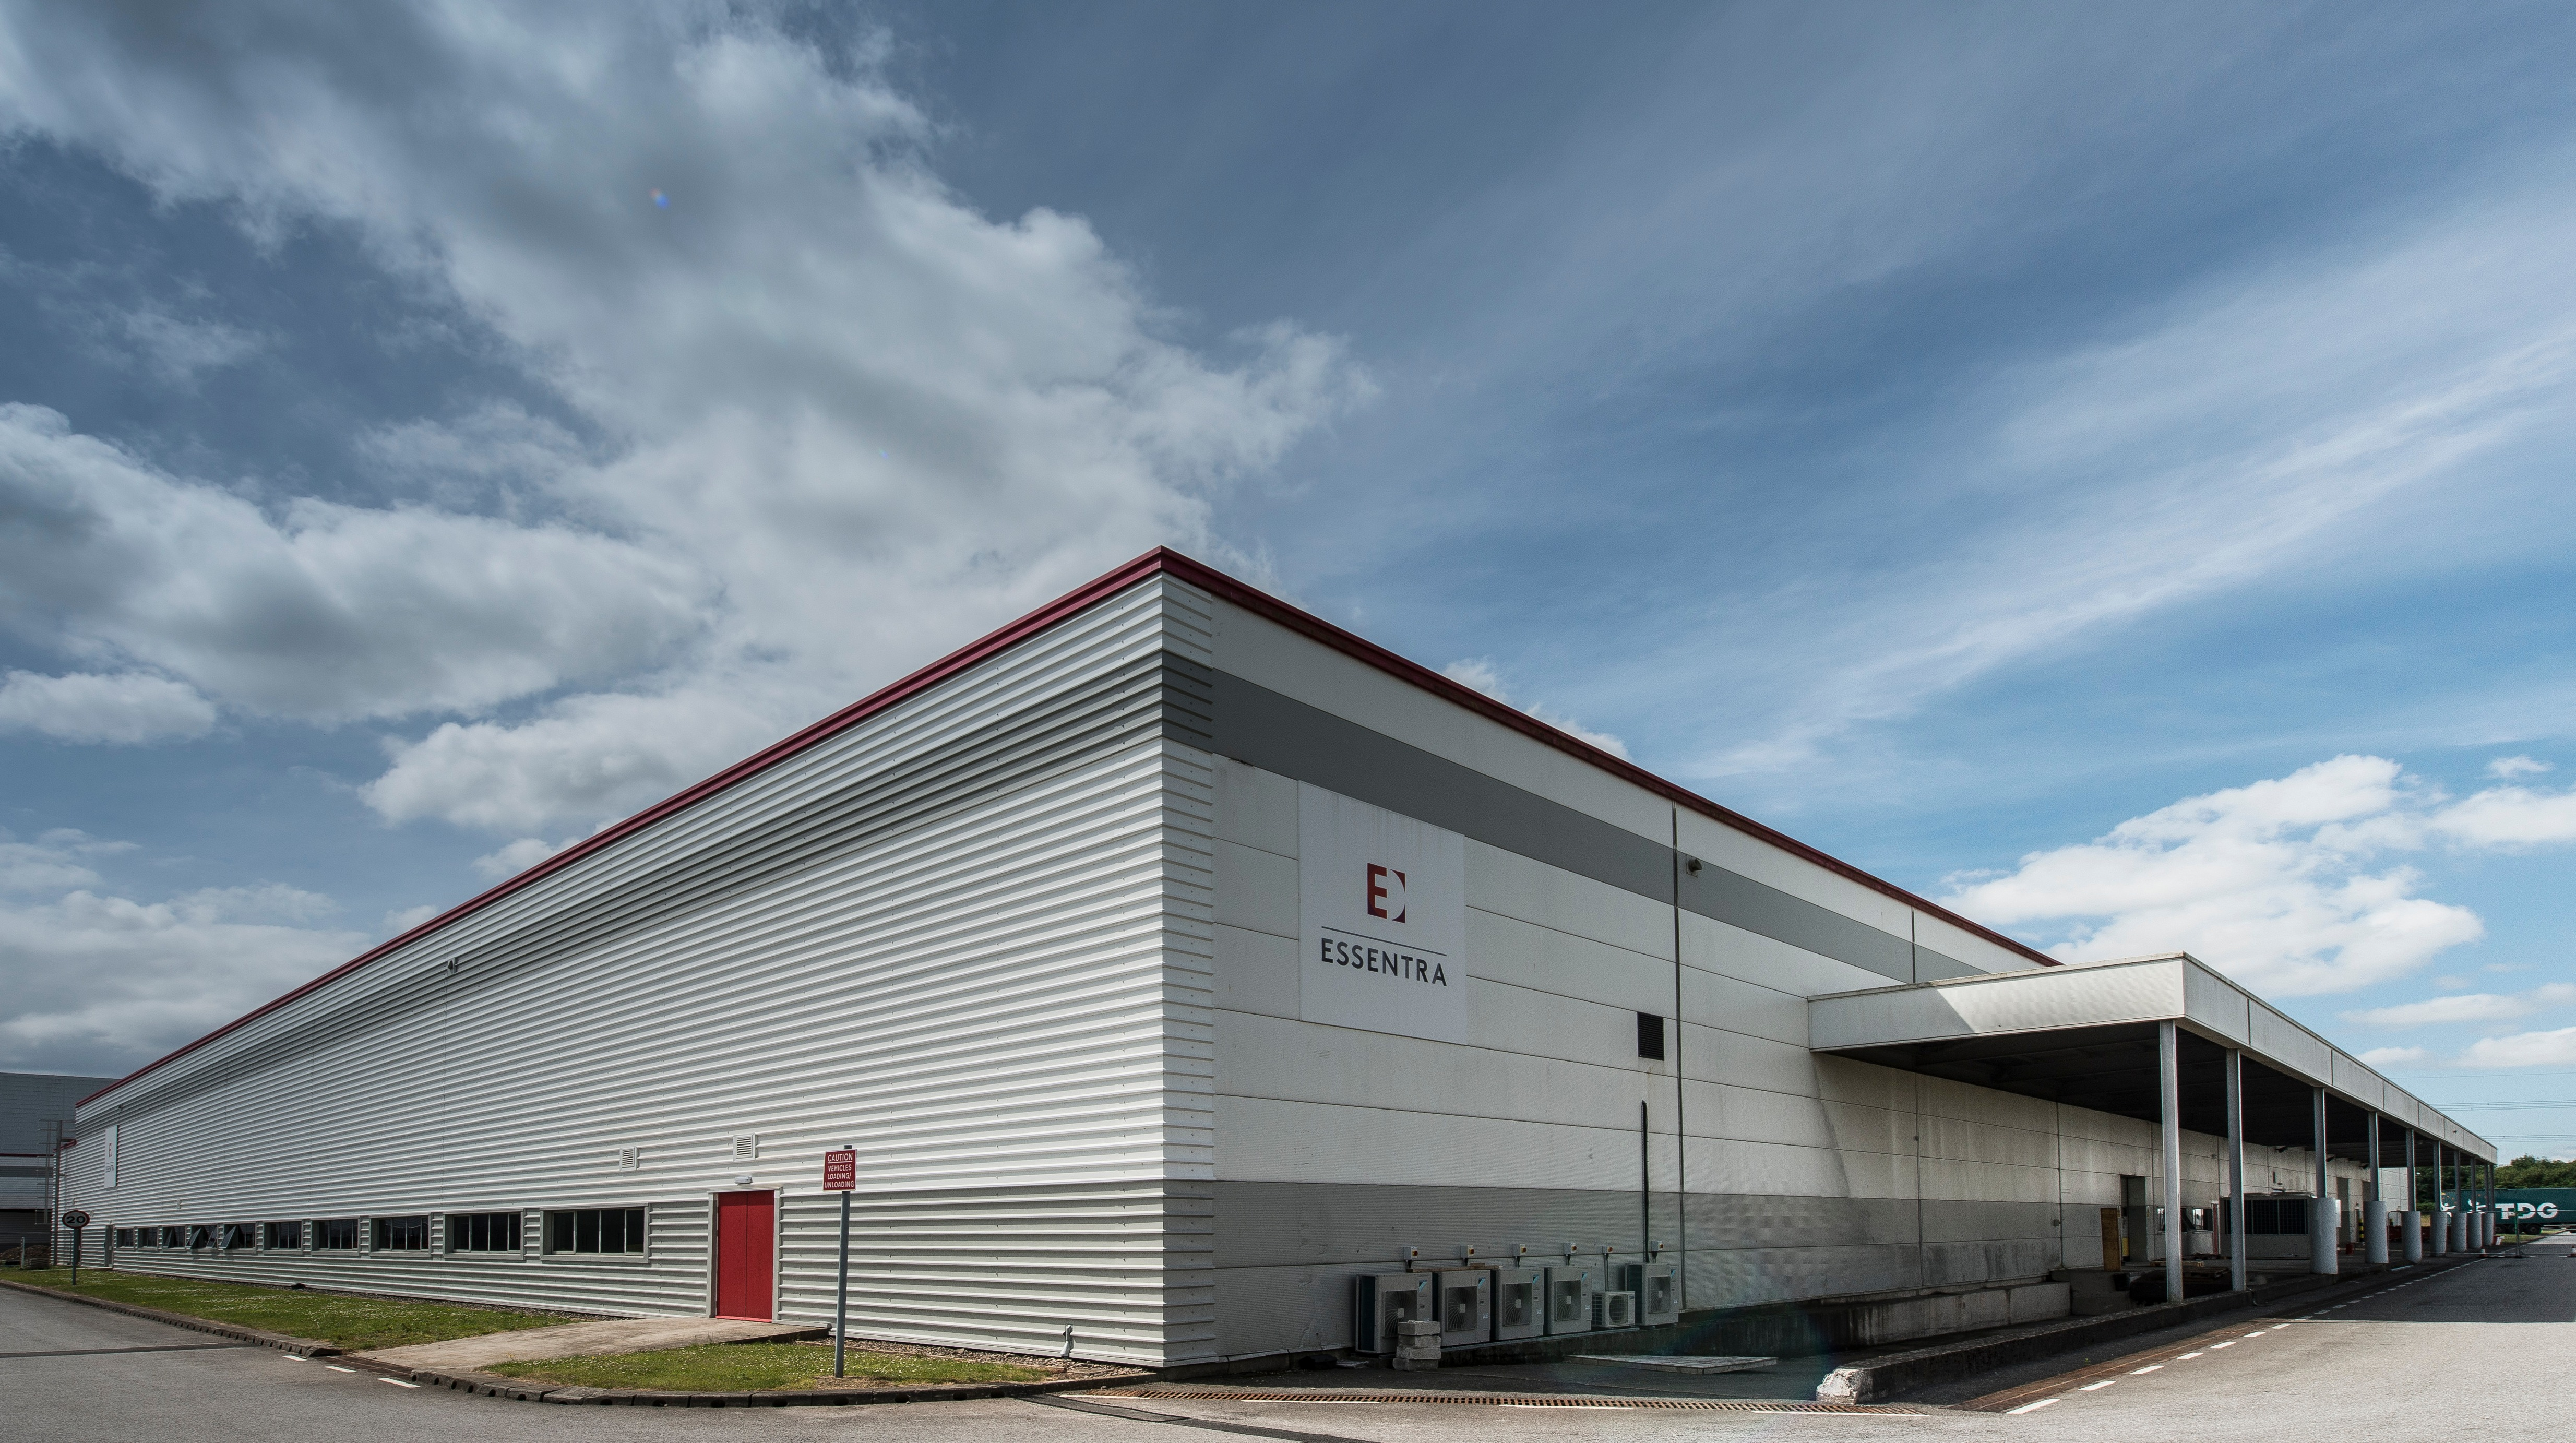 70 Jobs To Be Created At Packaging Company In Newport Wales Itv News